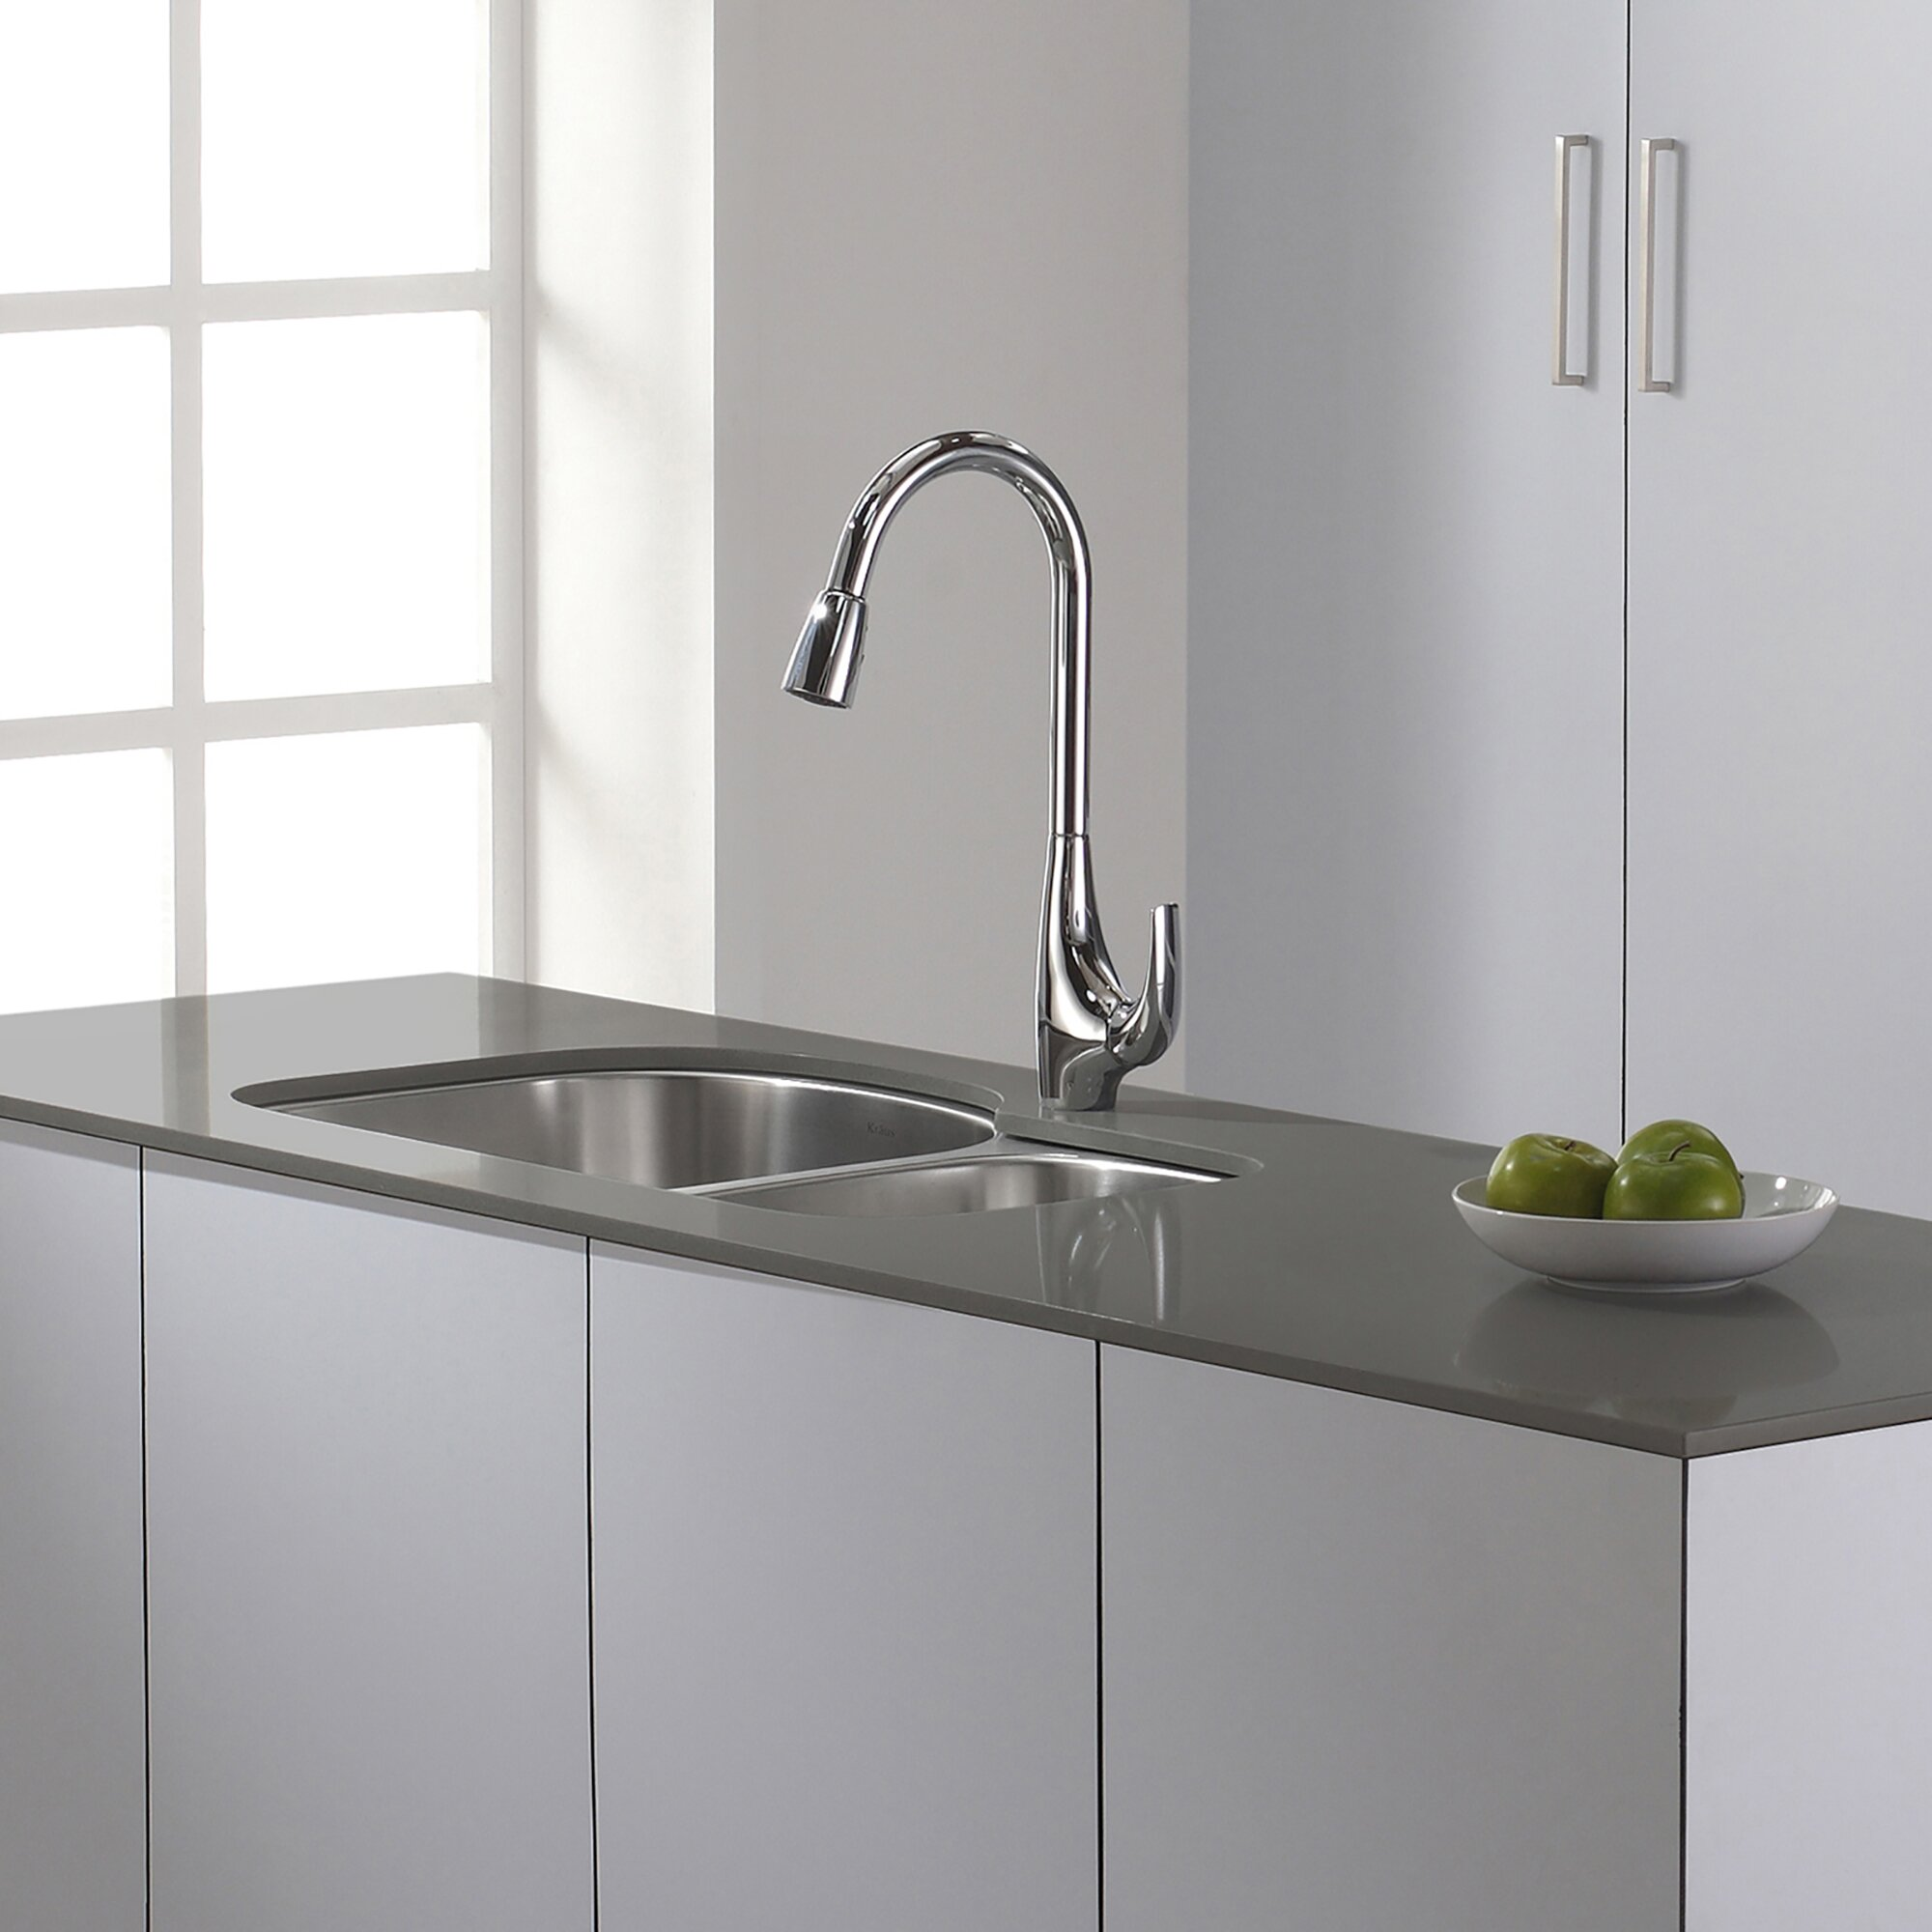 Kraus High Arch Single Handle Pull Down Kitchen Faucet ...